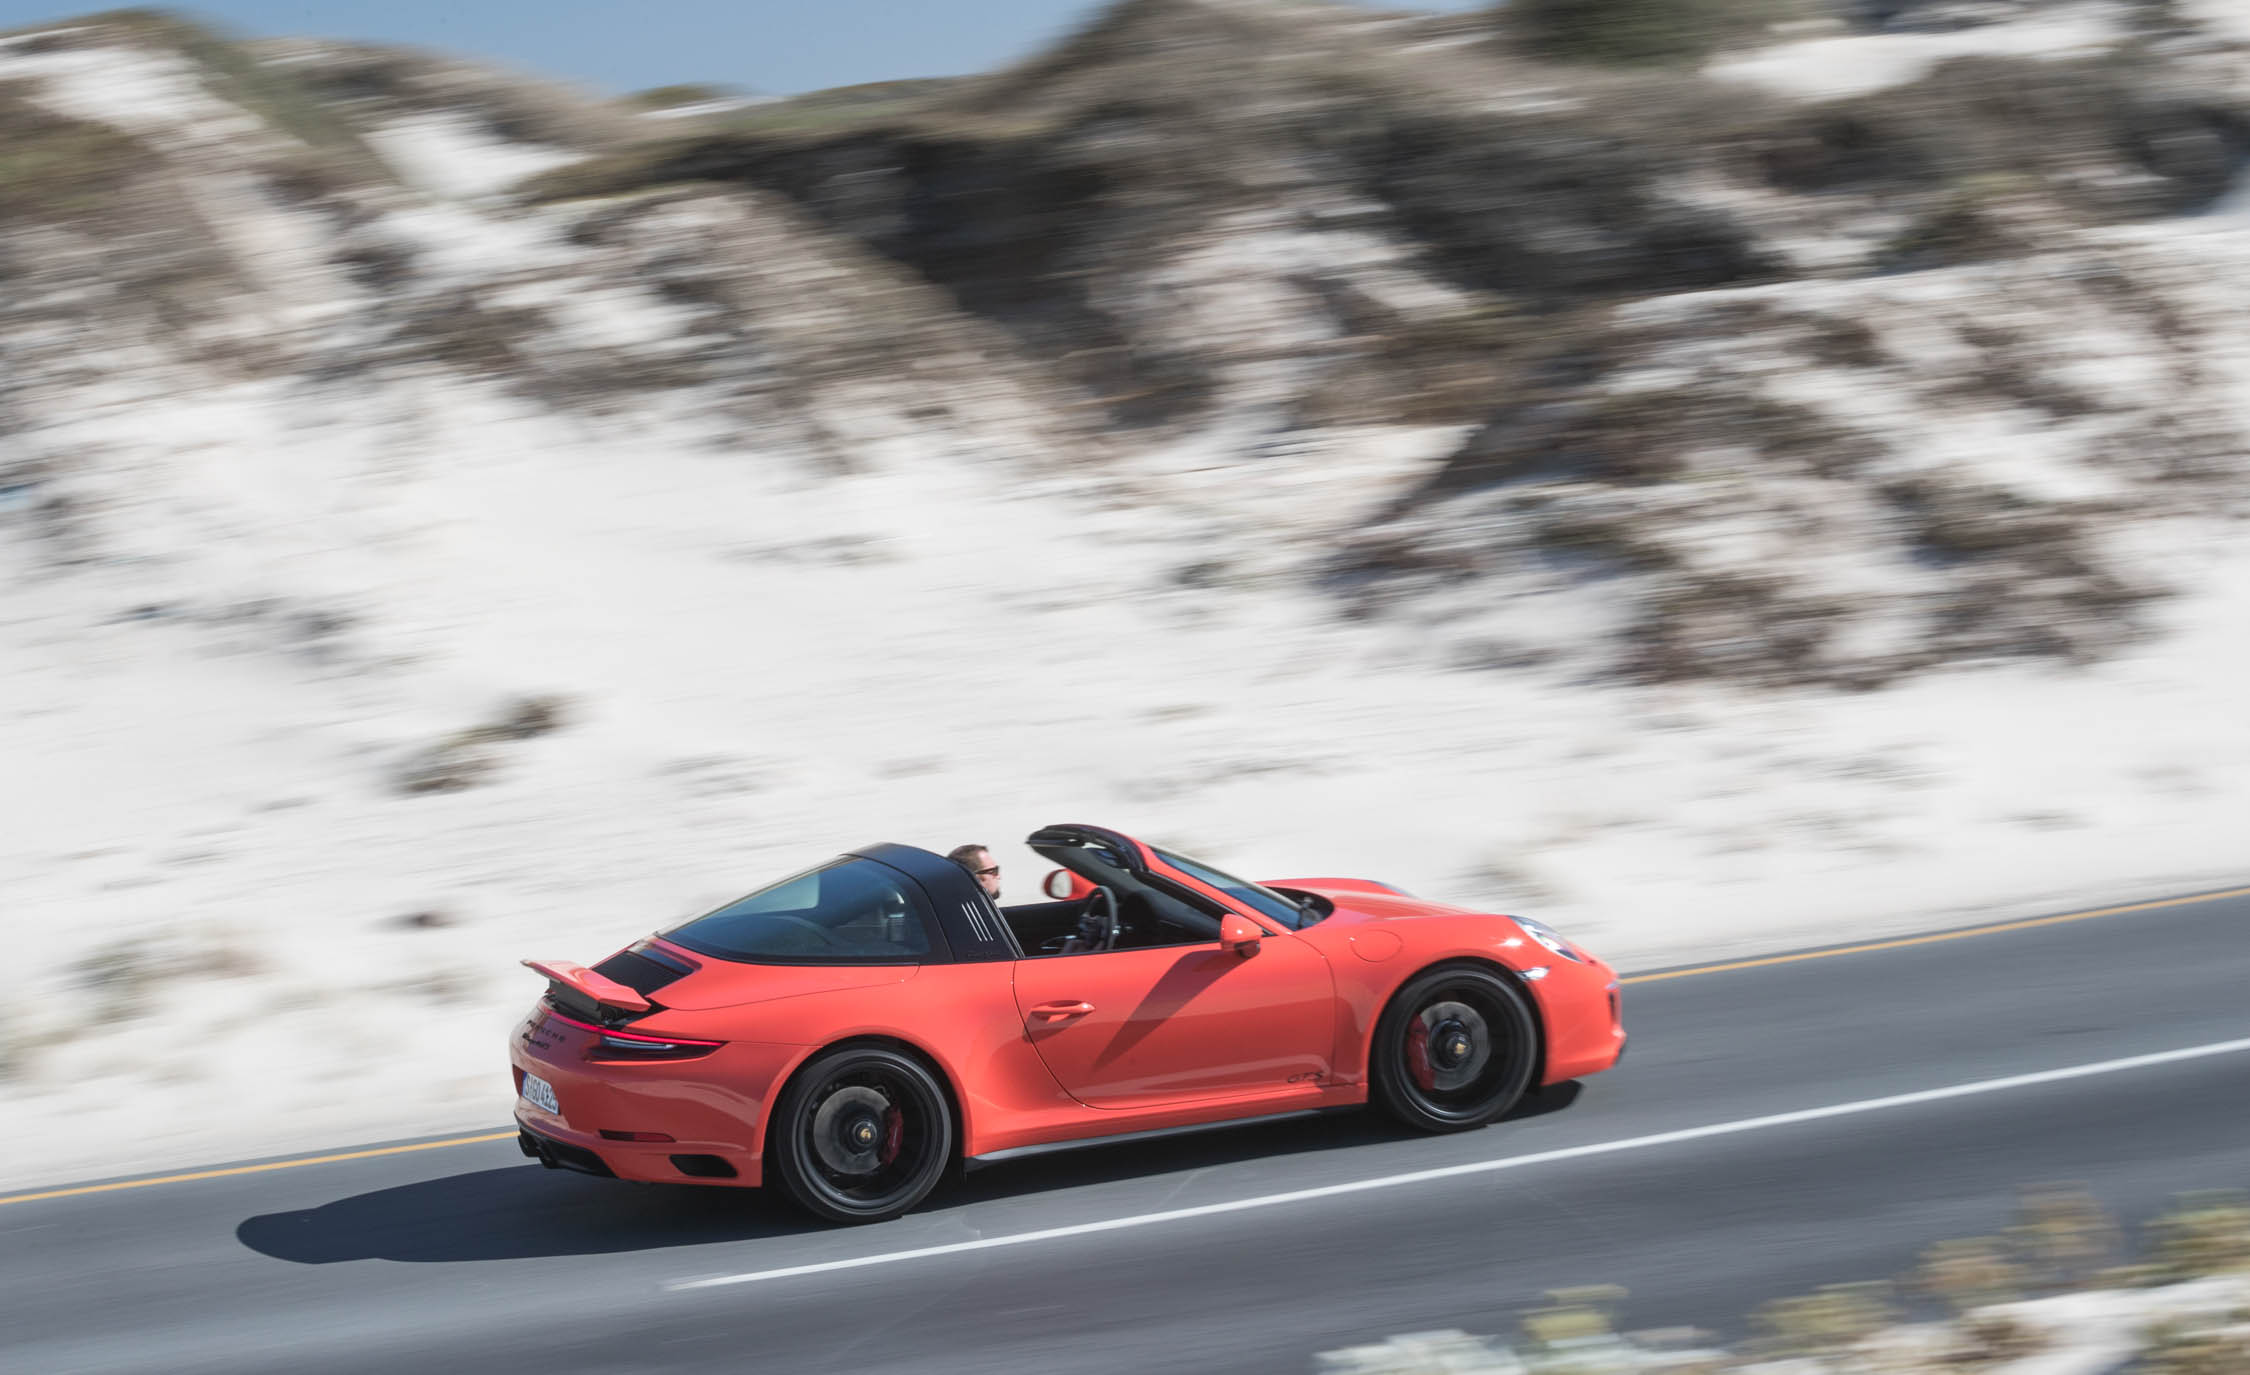 2017 Porsche 911 Targa 4 GTS Test Drive Side And Rear View (Photo 96 of 97)